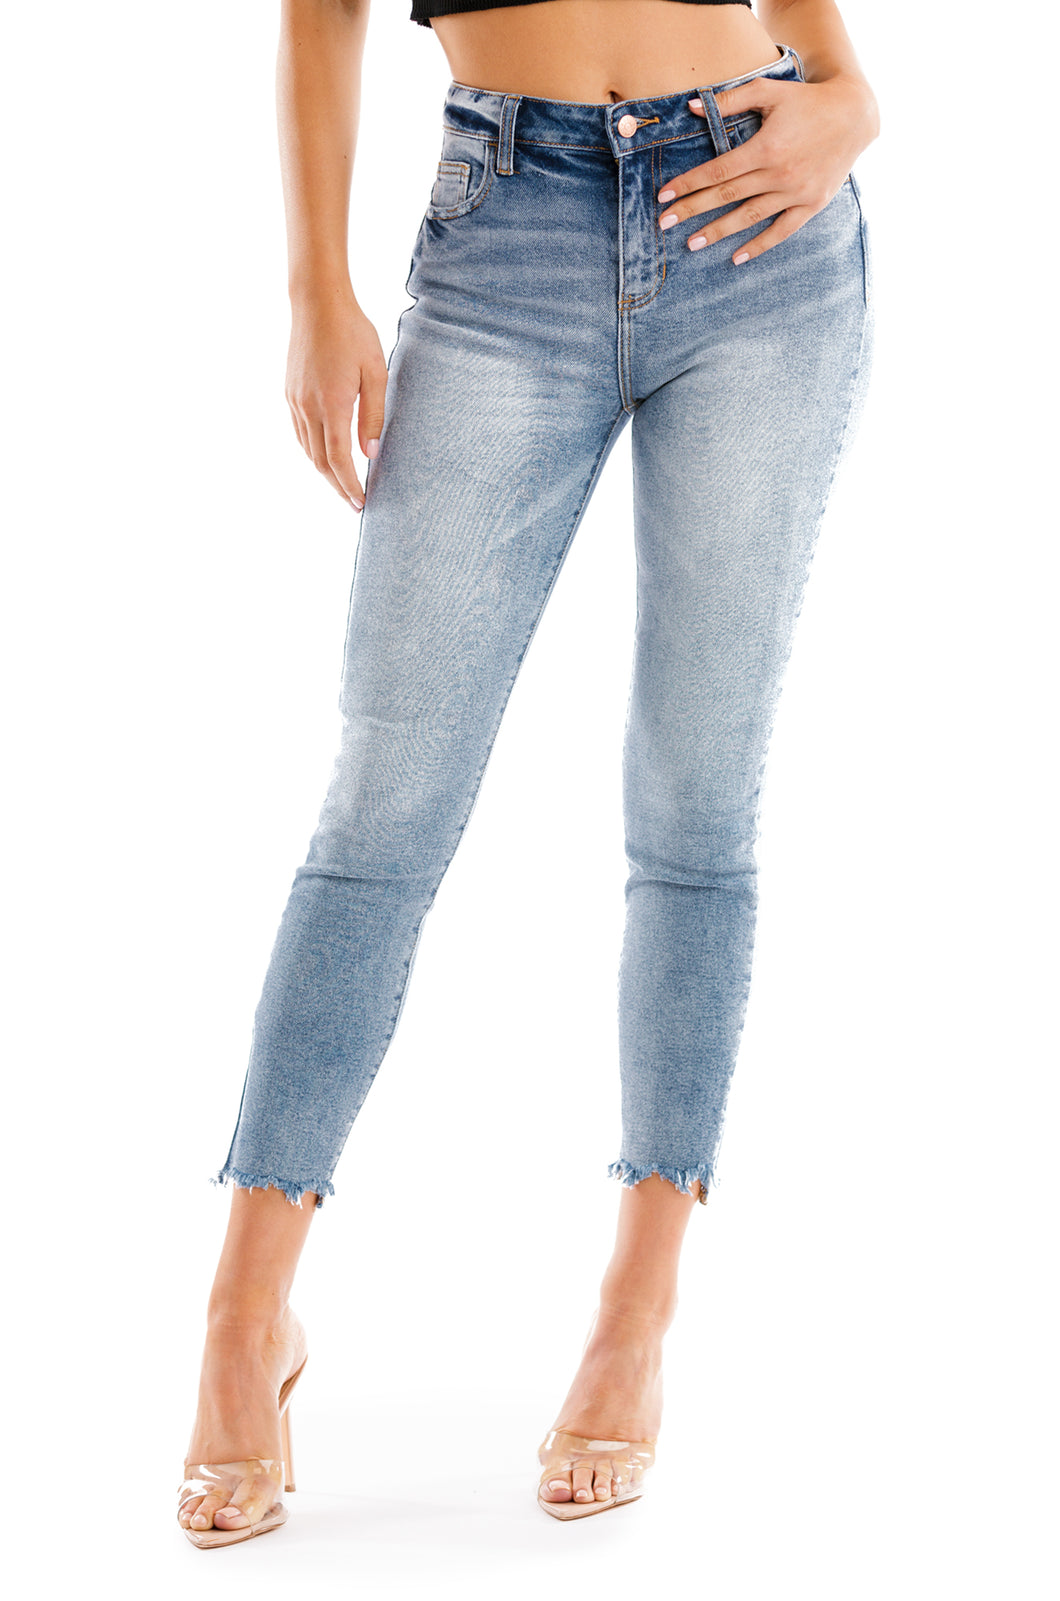 Most Envied Jeans - Light Blue Denim